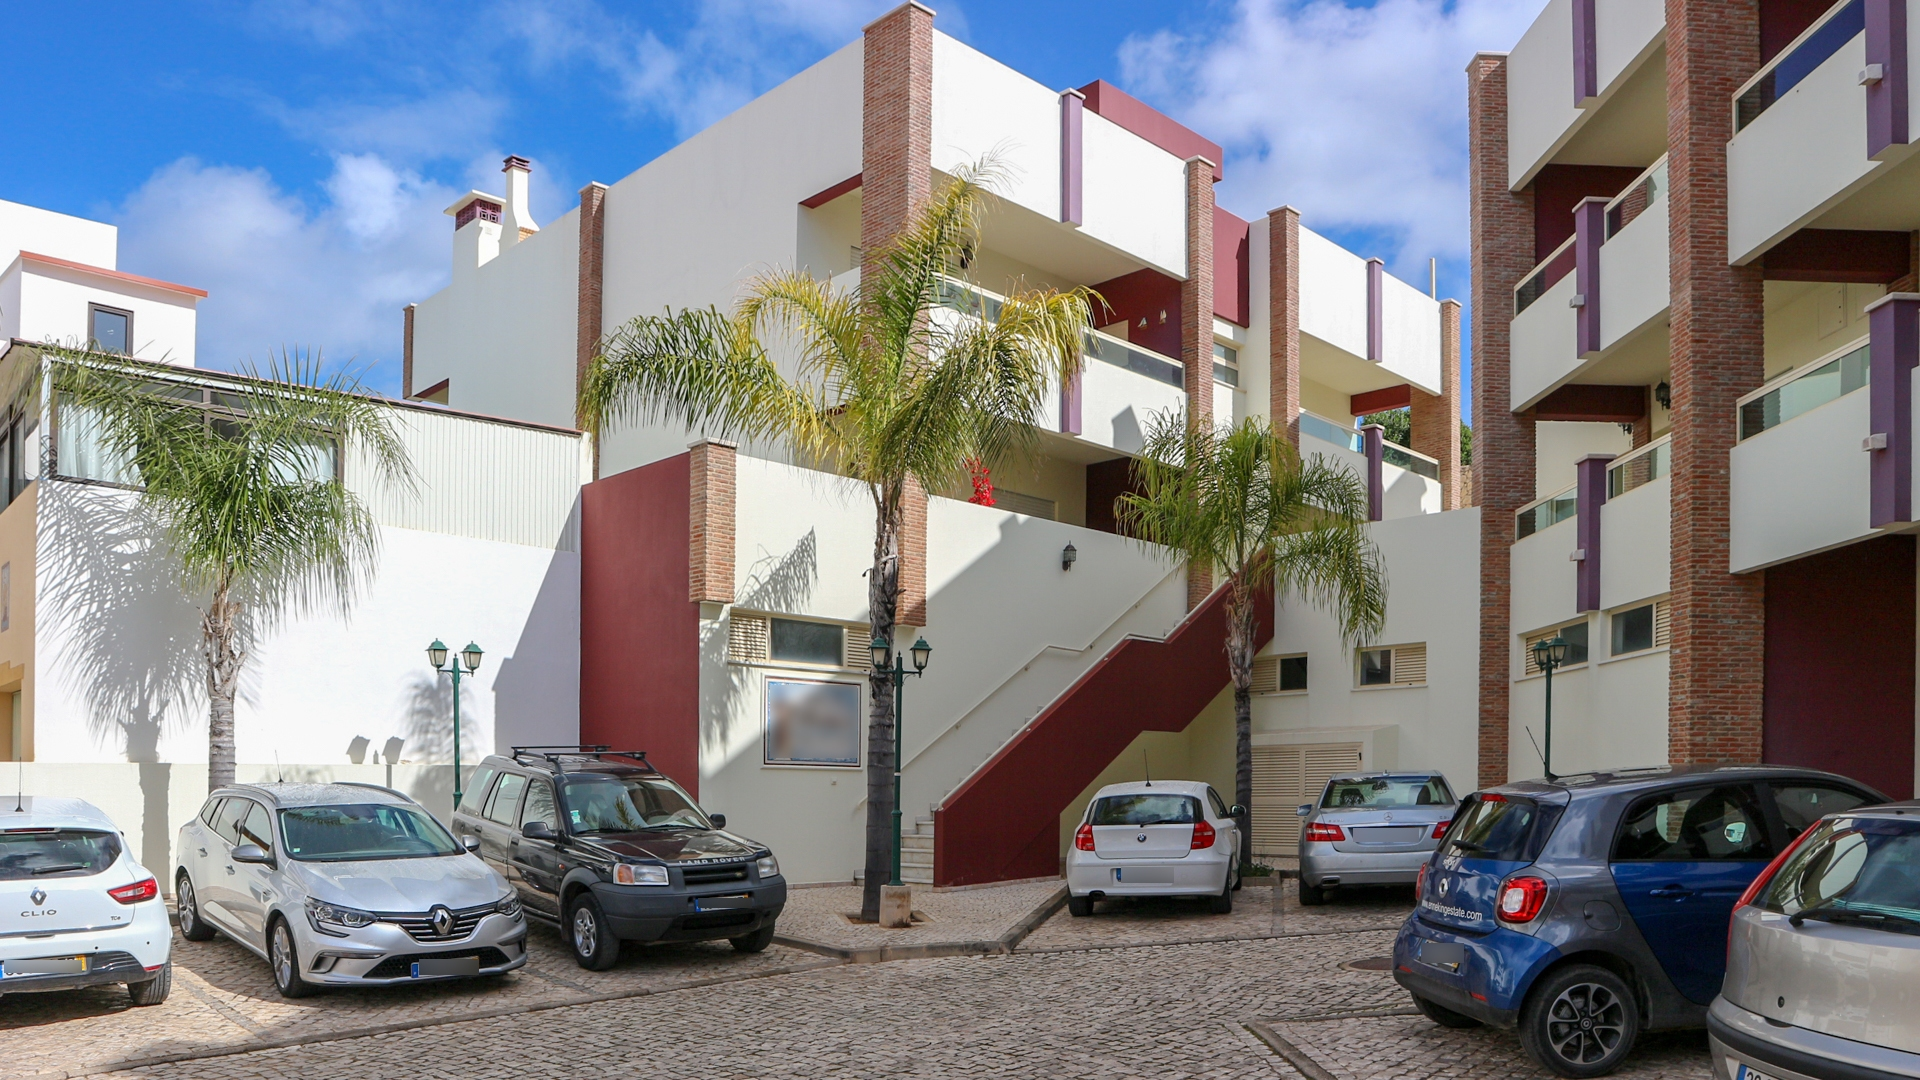 Modern two bedroom two bathroom apartment in the center of Ferragudo | VM1409 Top floor of two story building that consists of 4 apartments, with verandas, in the center of Ferragudo.